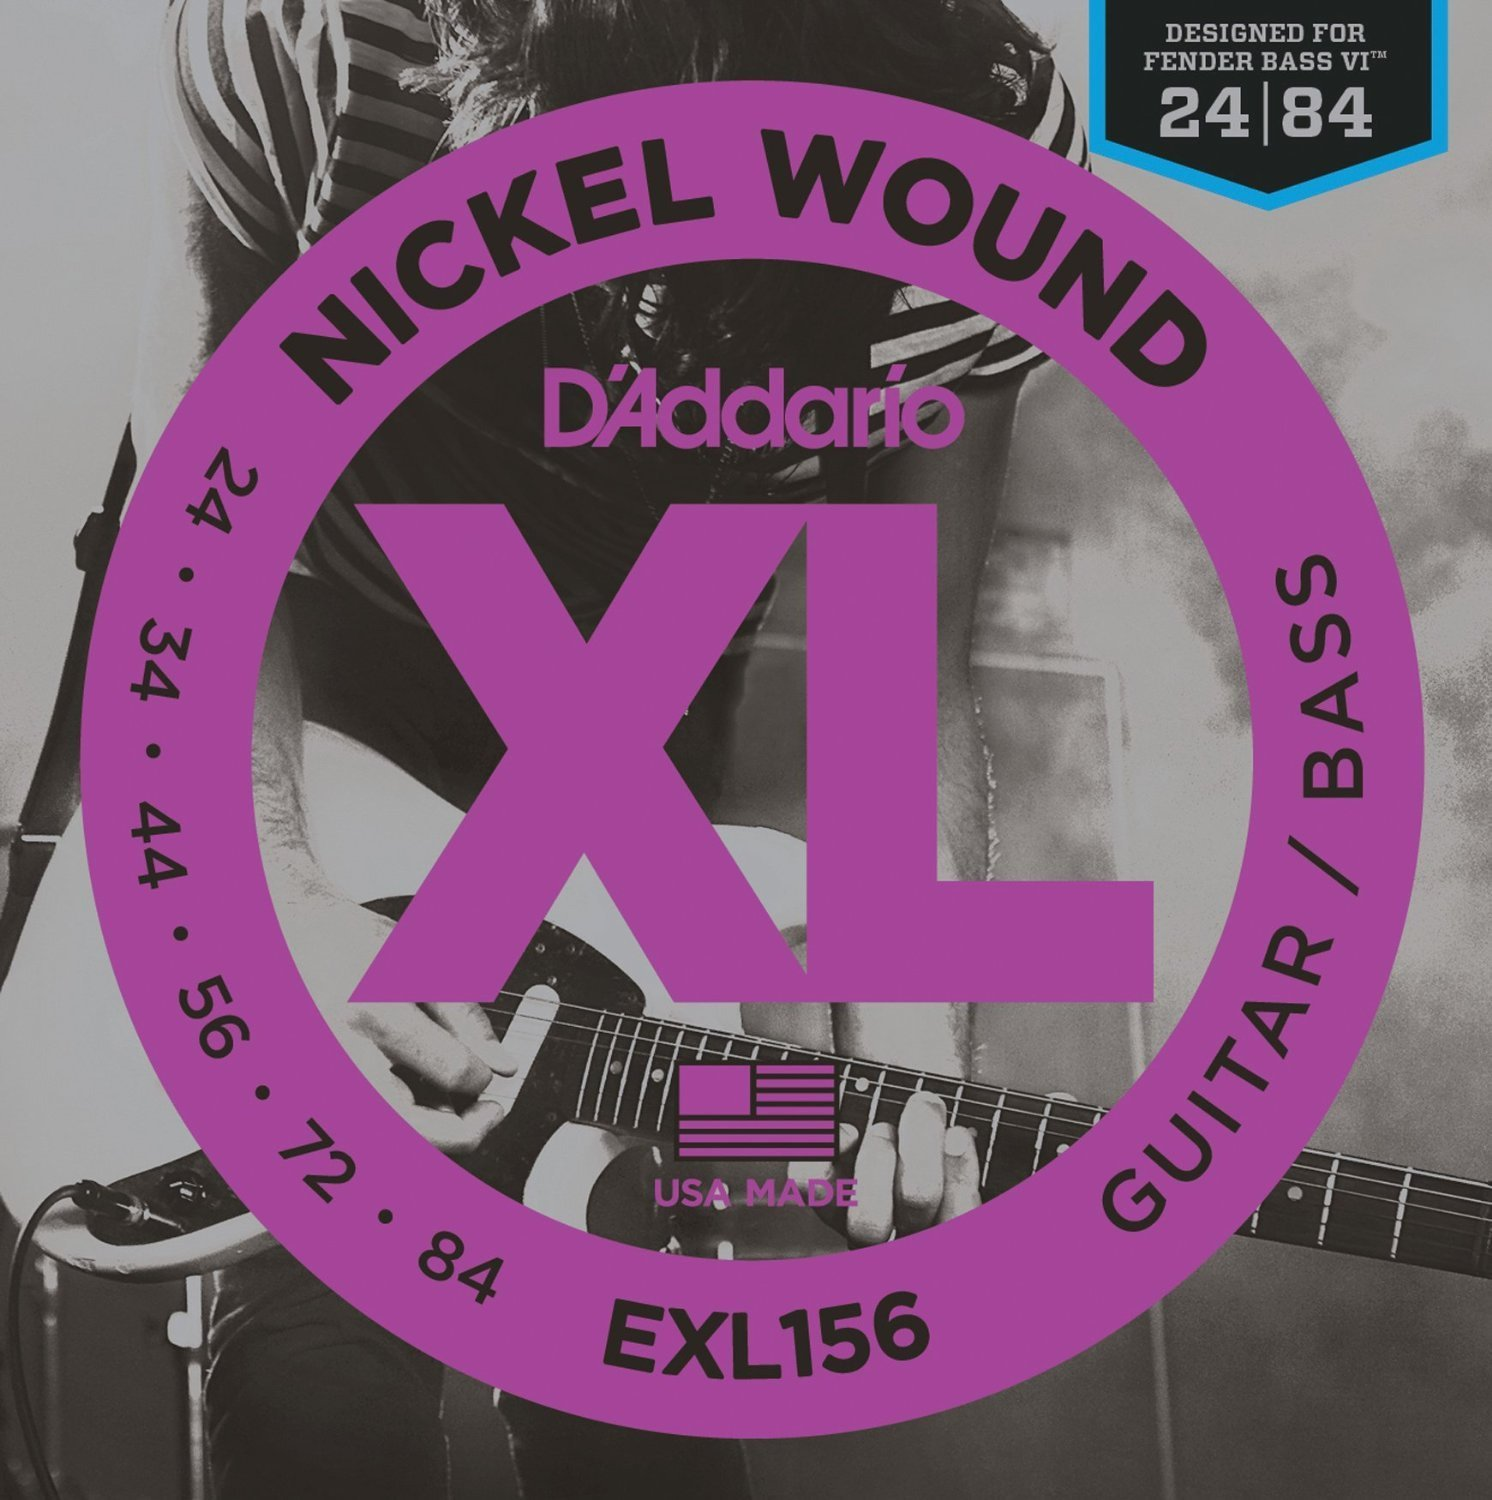 D'Addario EXL156 Nickel Wound Electric Guitar/Nickel Wound Bass Strings, 24-84